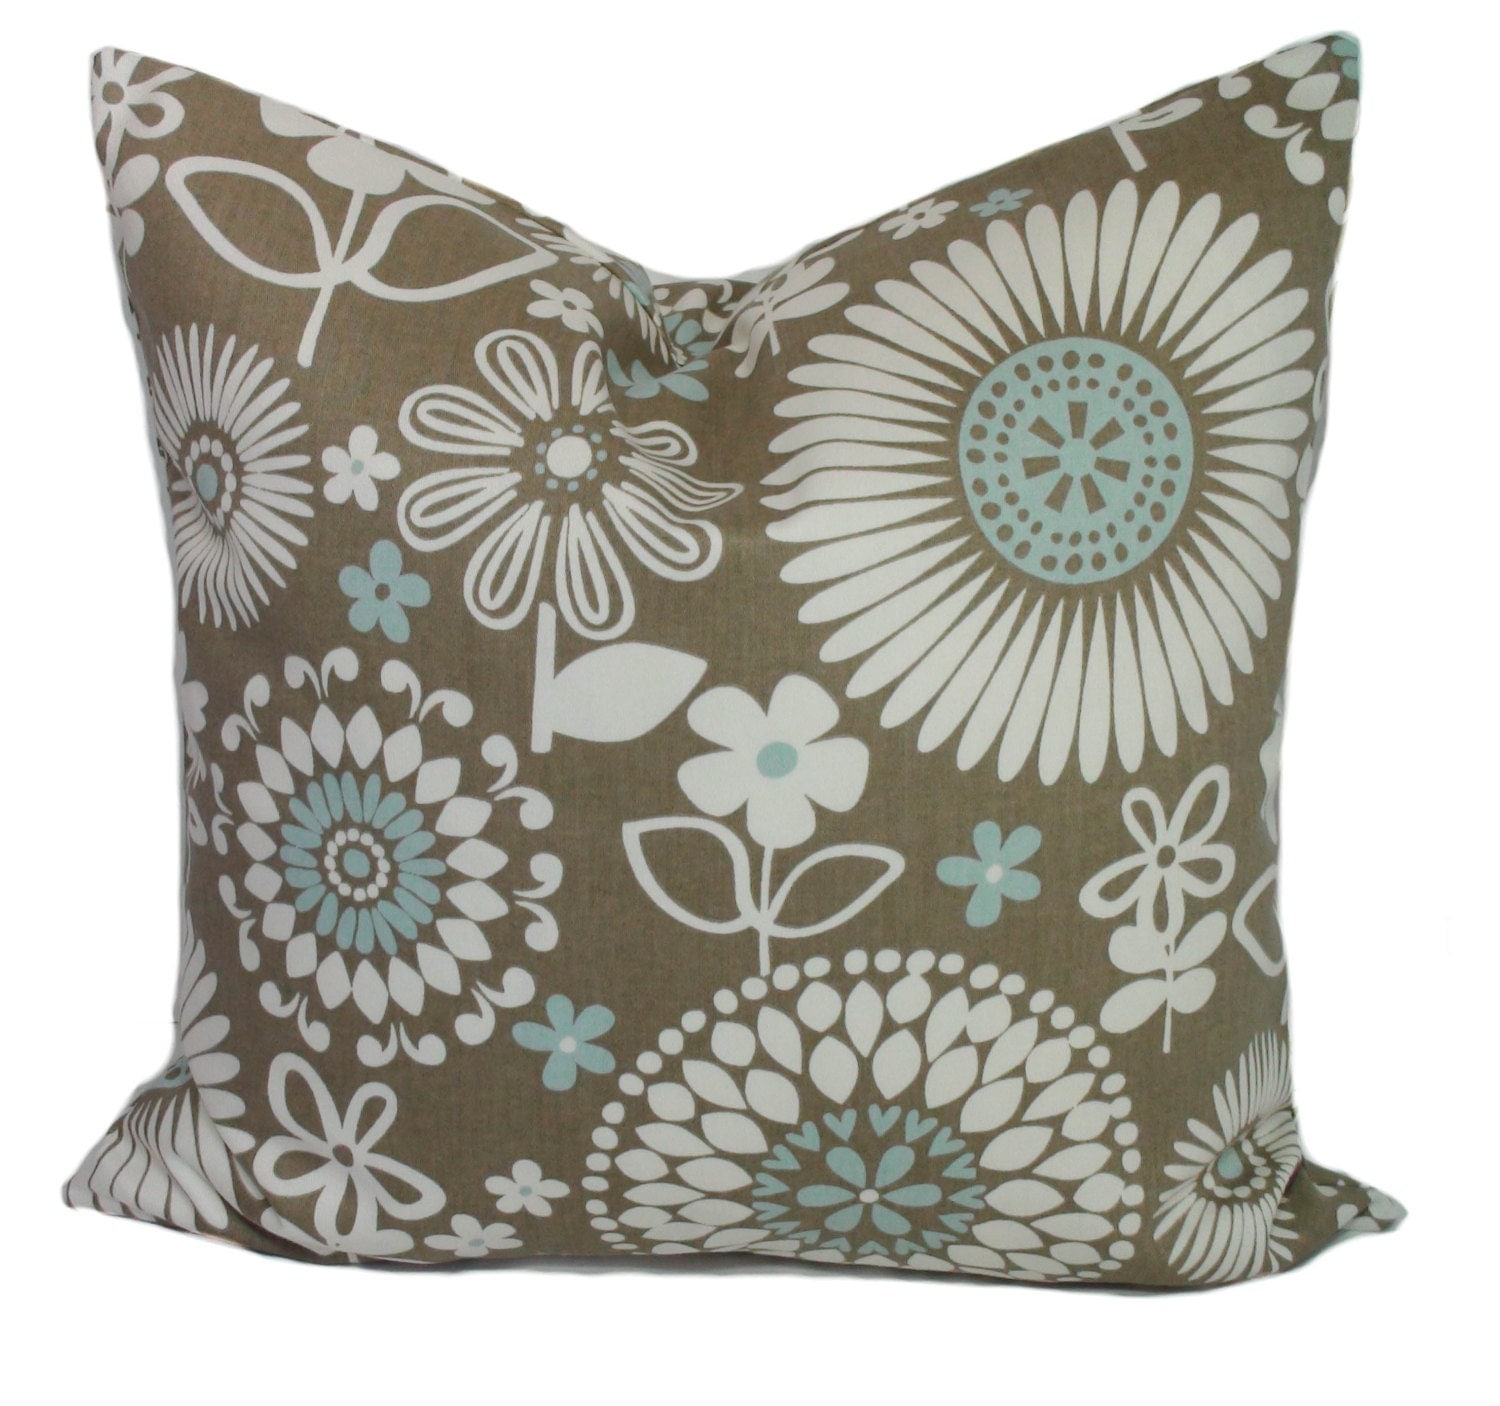 Brown Floral Throw Pillow : Brown pillow covers Blue pillow Floral pillows by PillowCorner